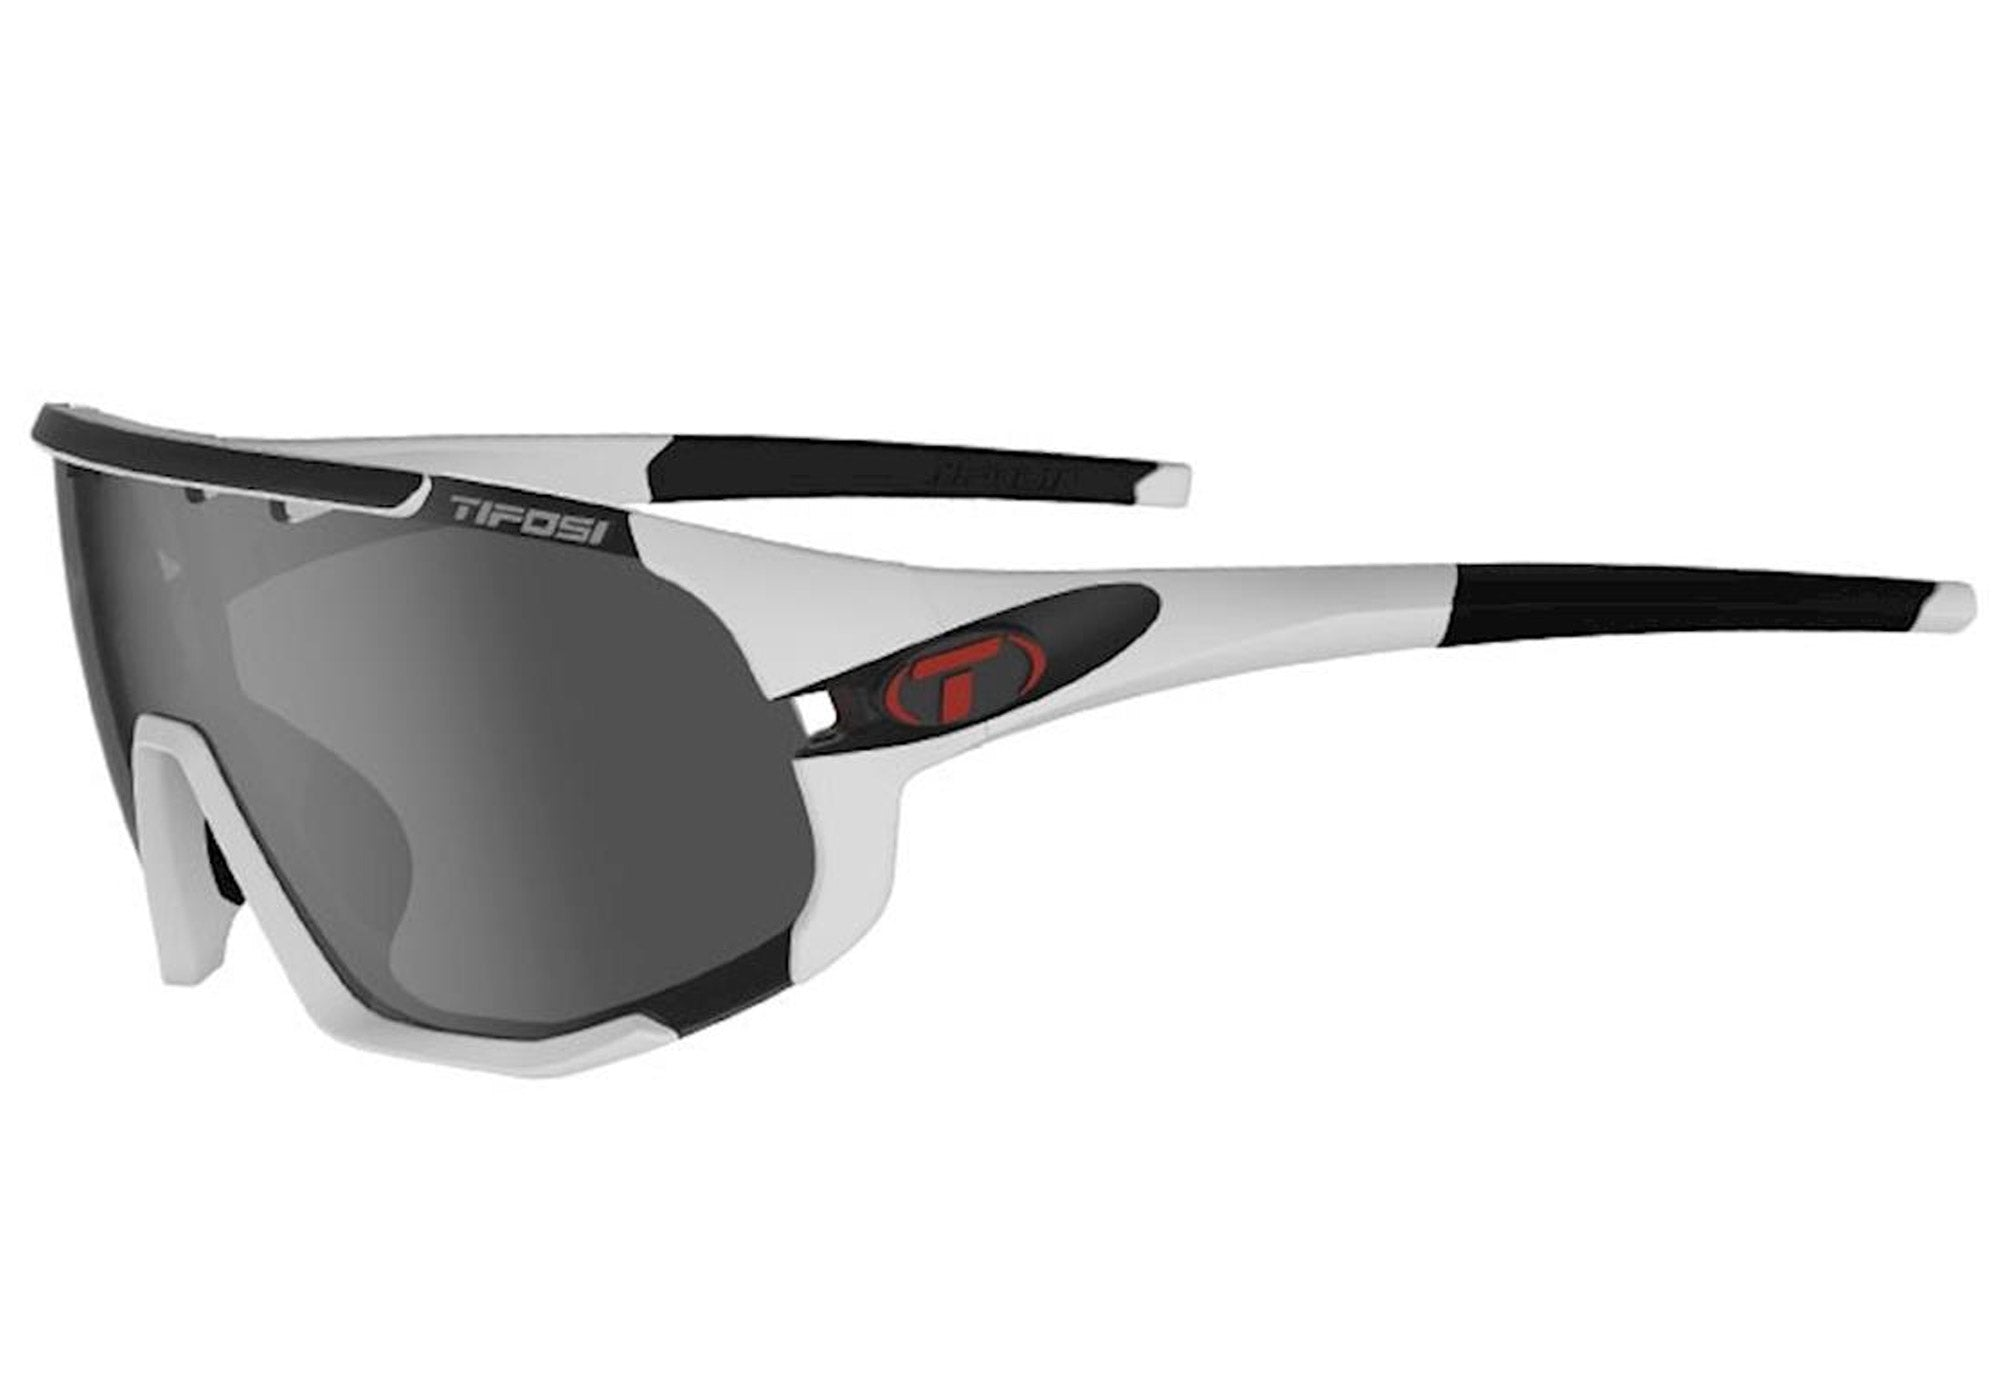 Tifosi Sledge Matte White Sunglasses With 3 Interchangeable Lenses at Woolys Wheels Sydney